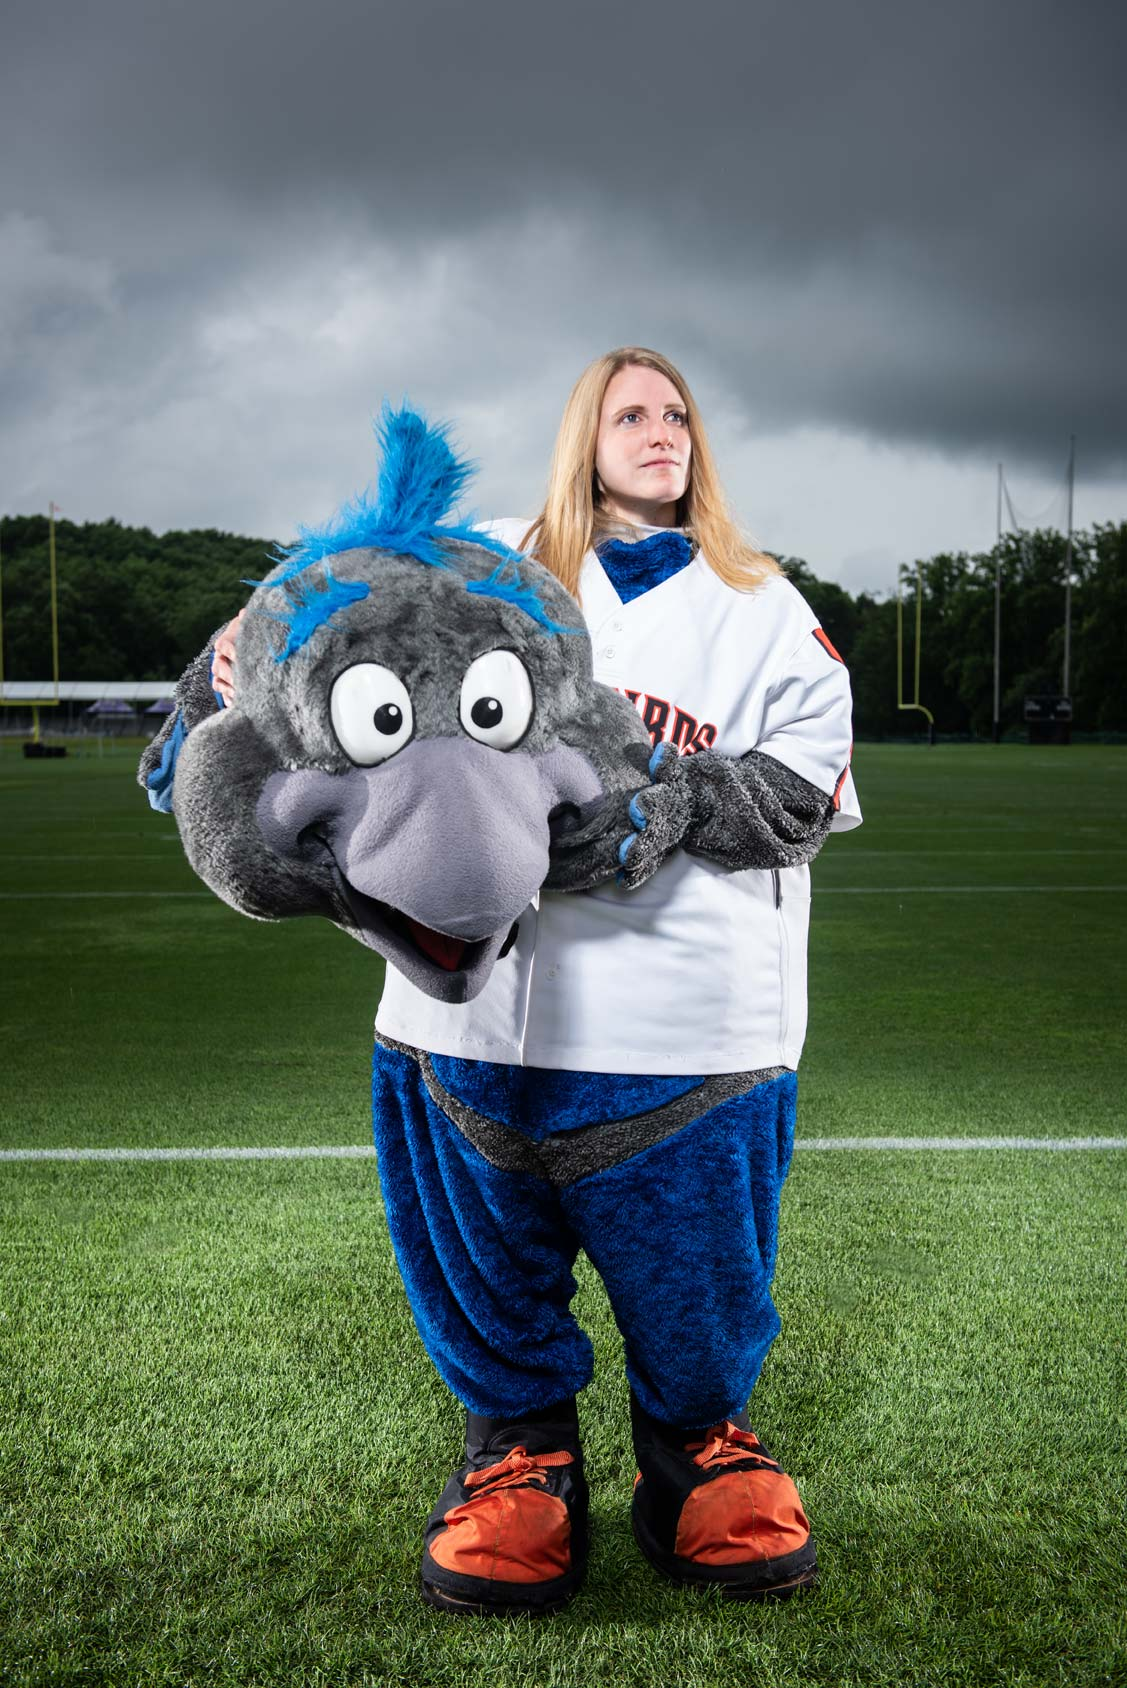 Female in a mascot costume with her mascot head in her hands